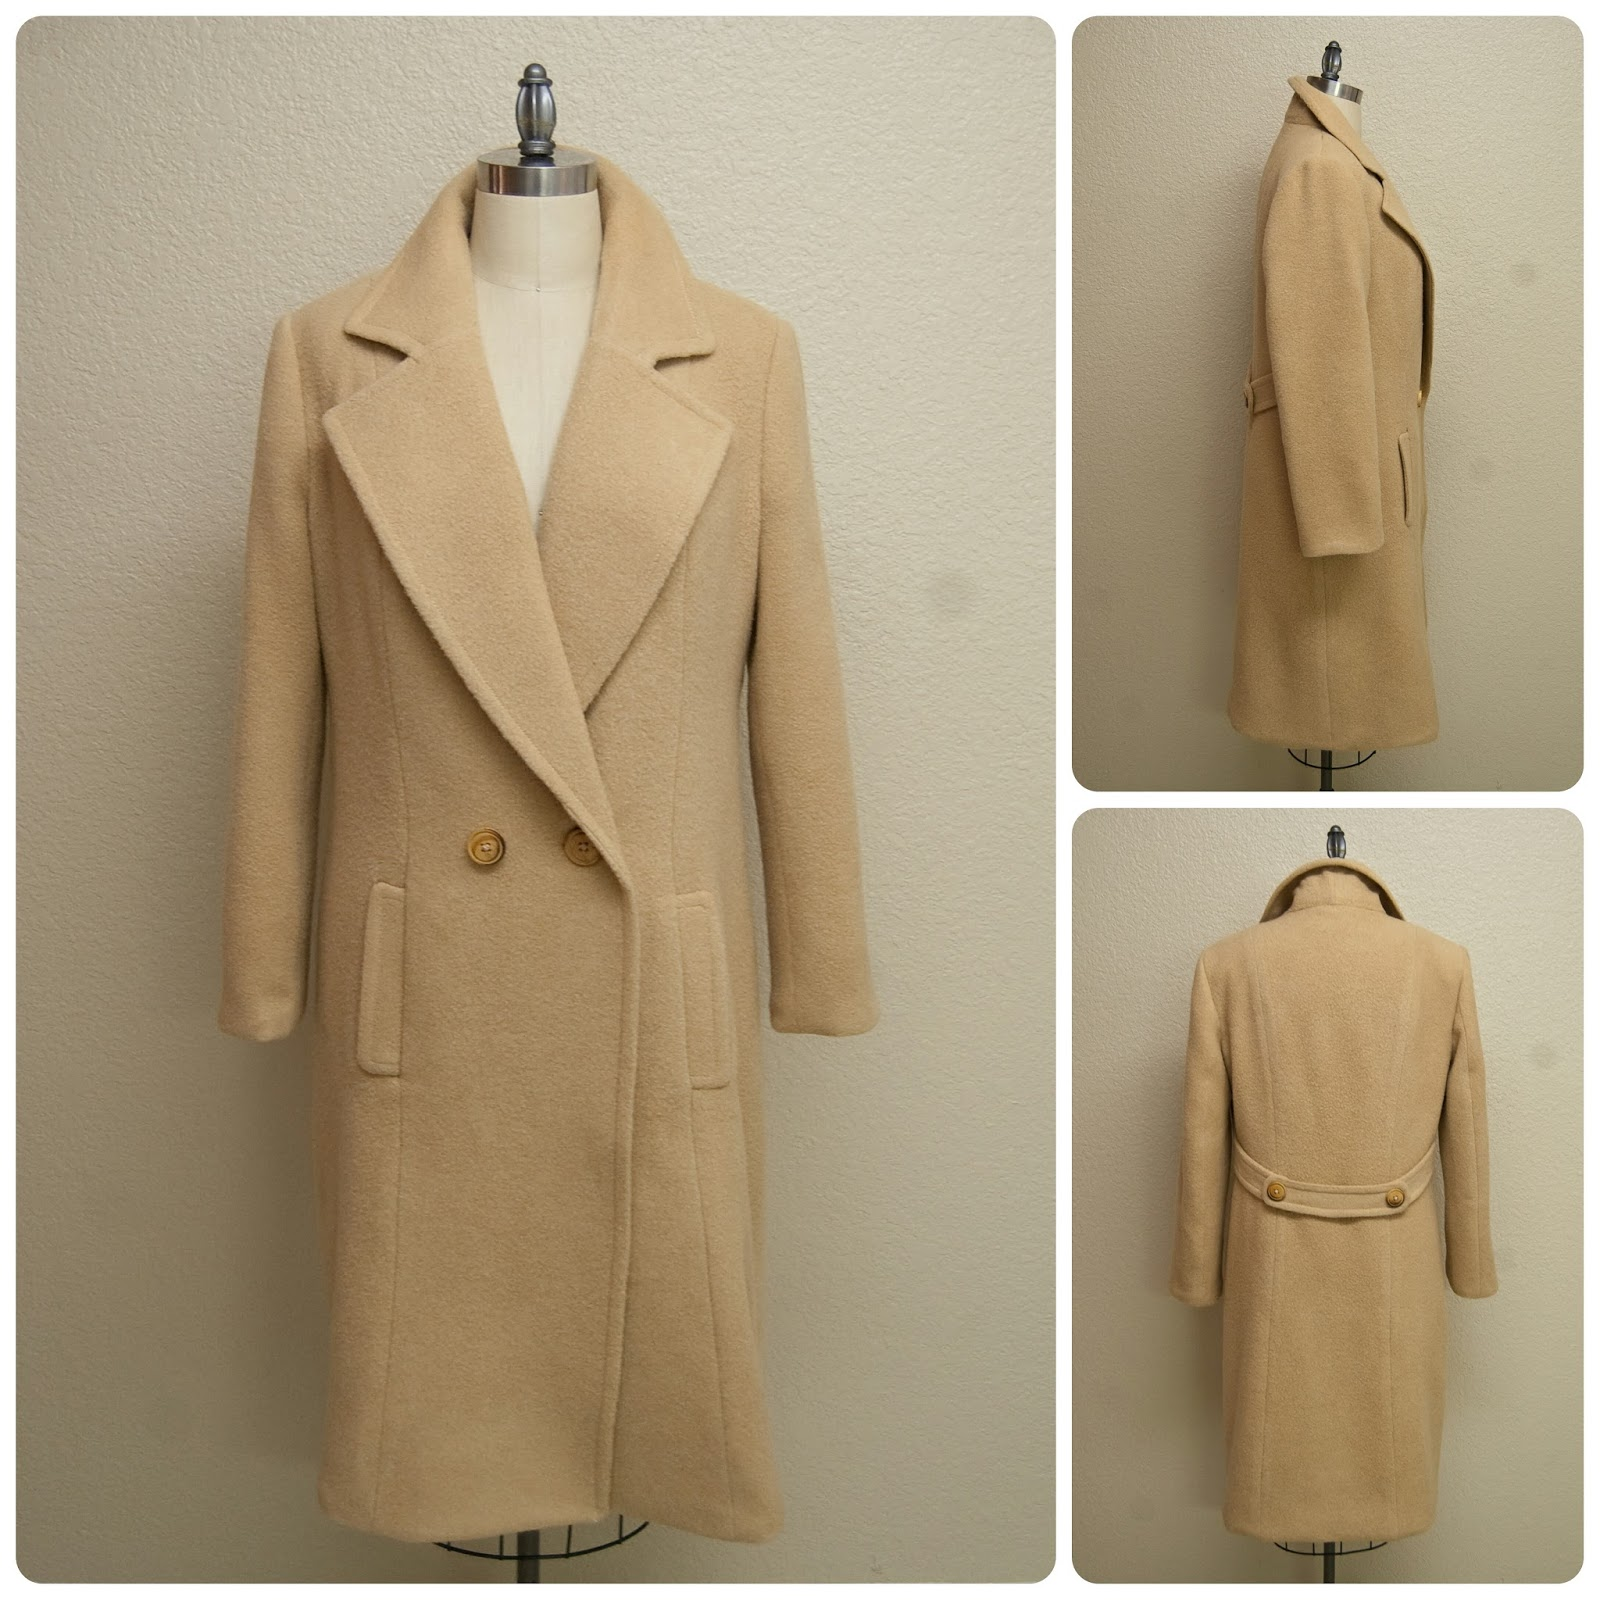 A Classic Camel Hair Coat - Mood Sewing Network